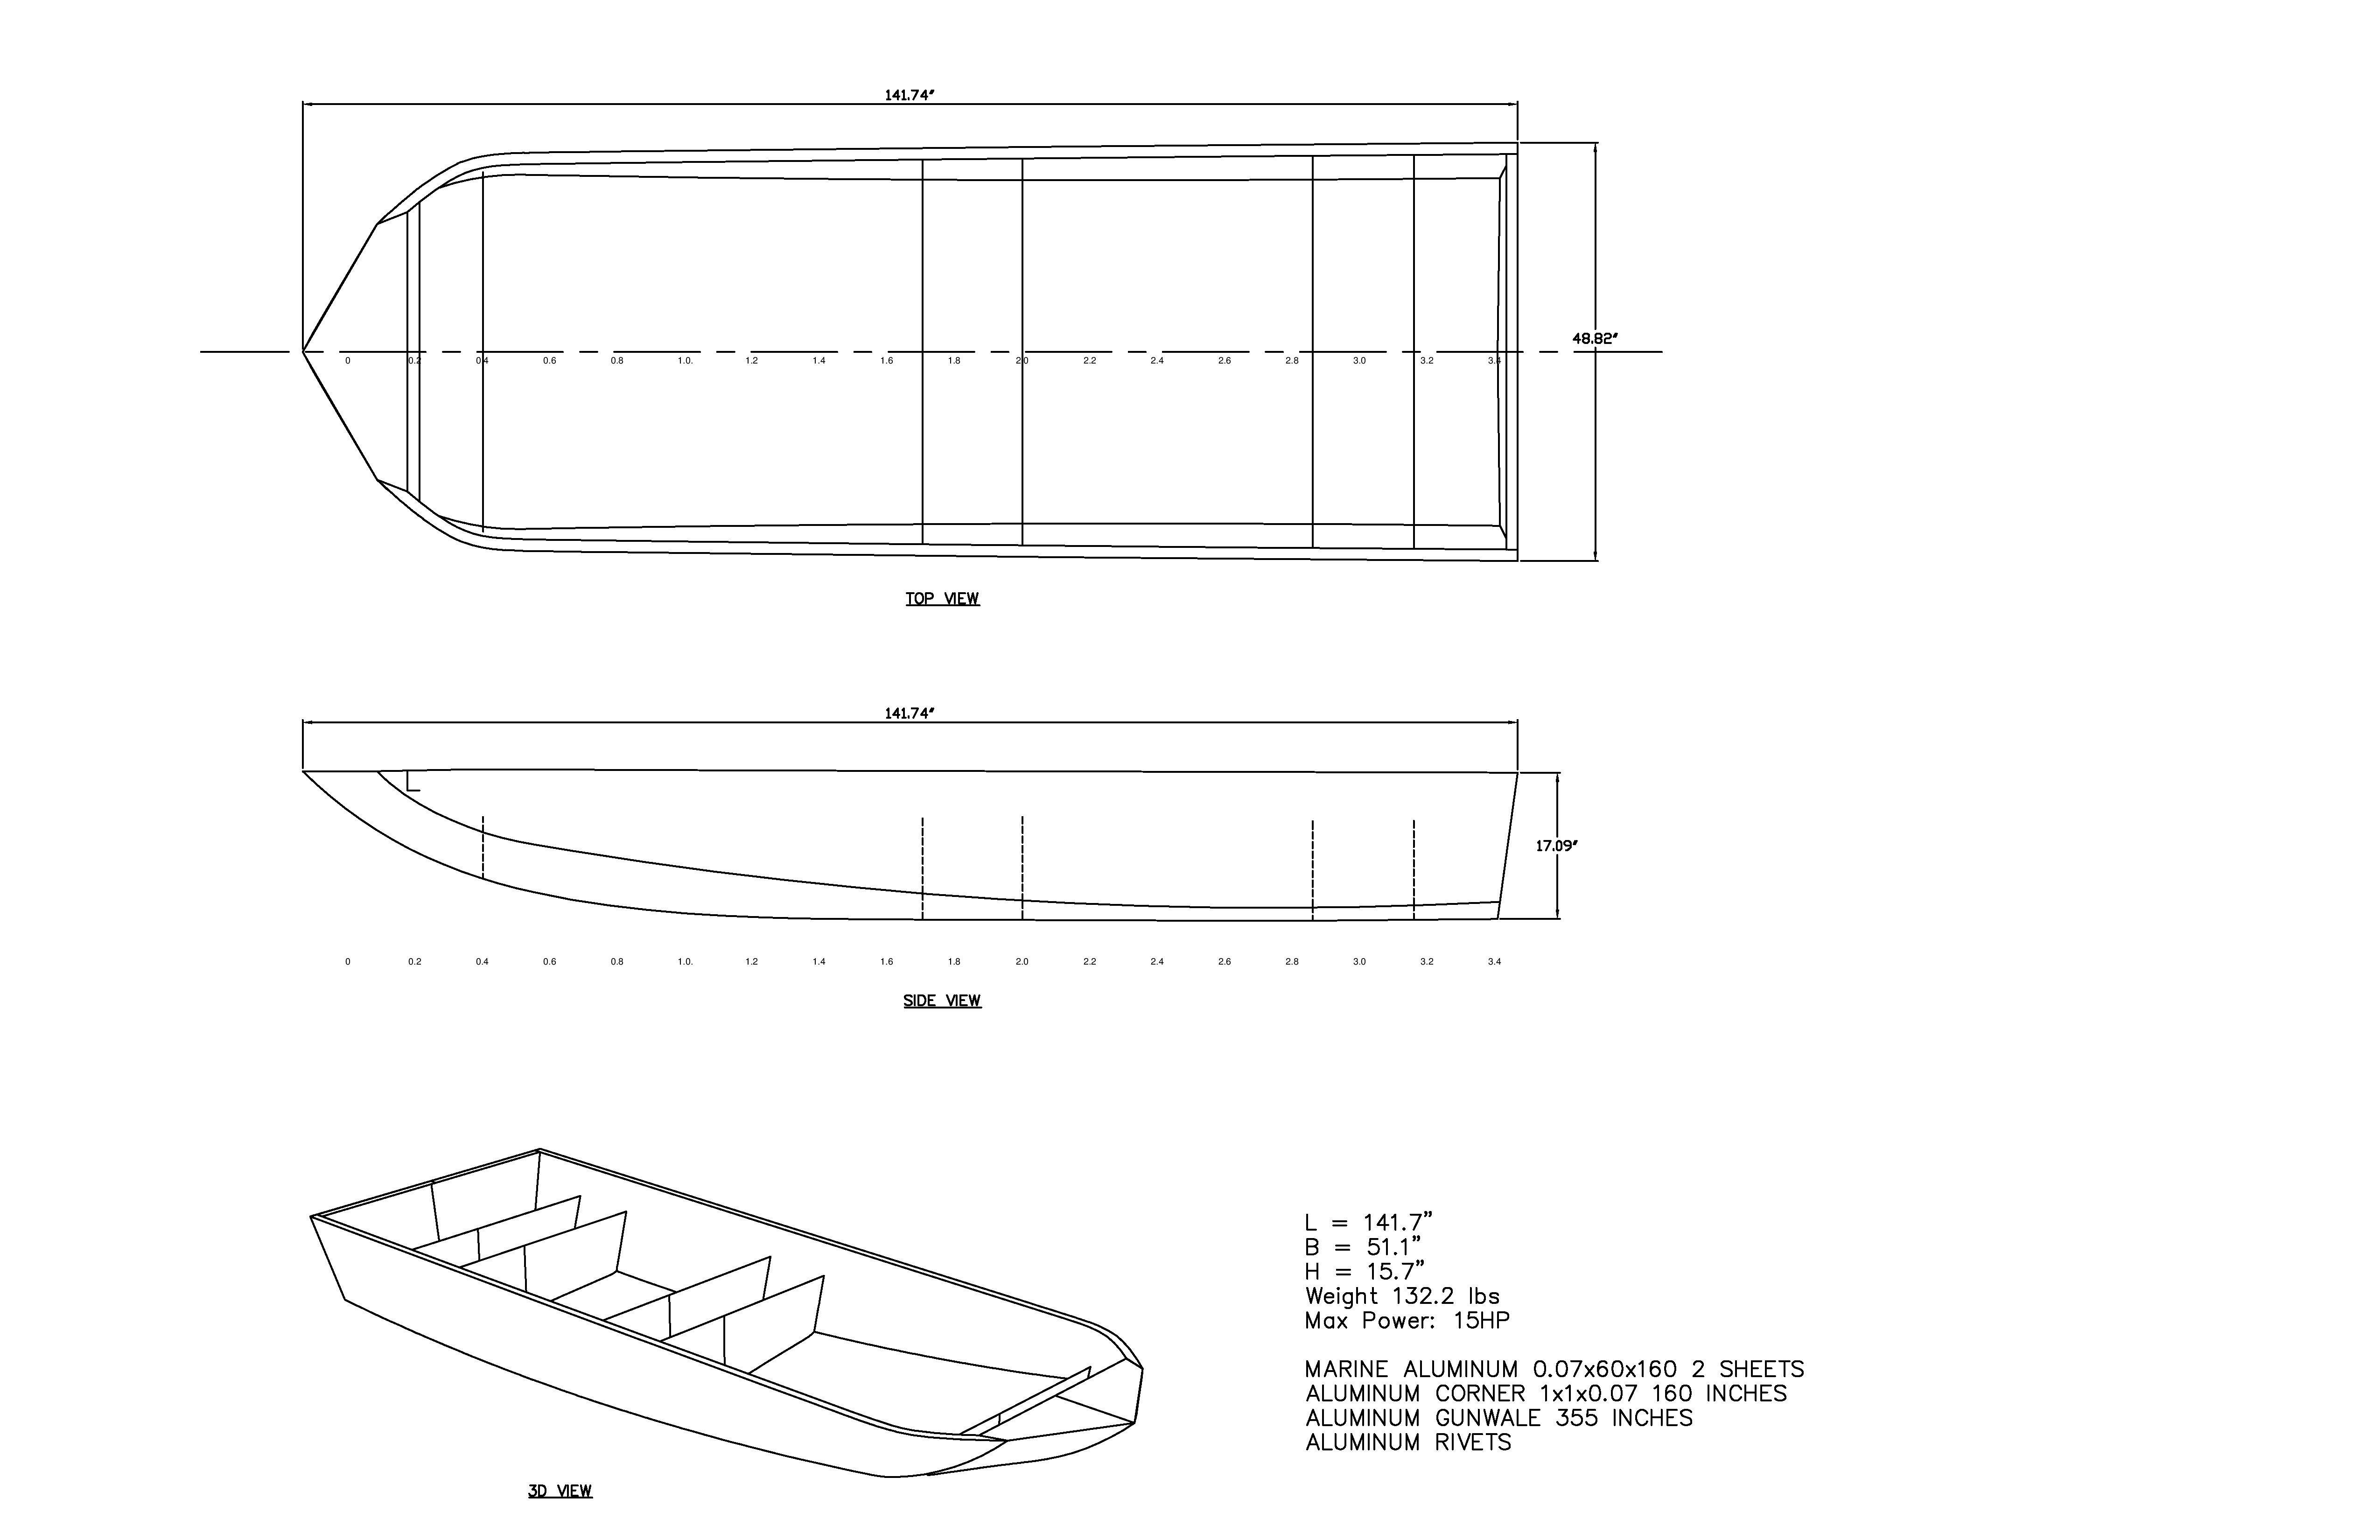 12 Foot Aluminum Boat Plans 4 Ft Wide Up To 15 H P Motor